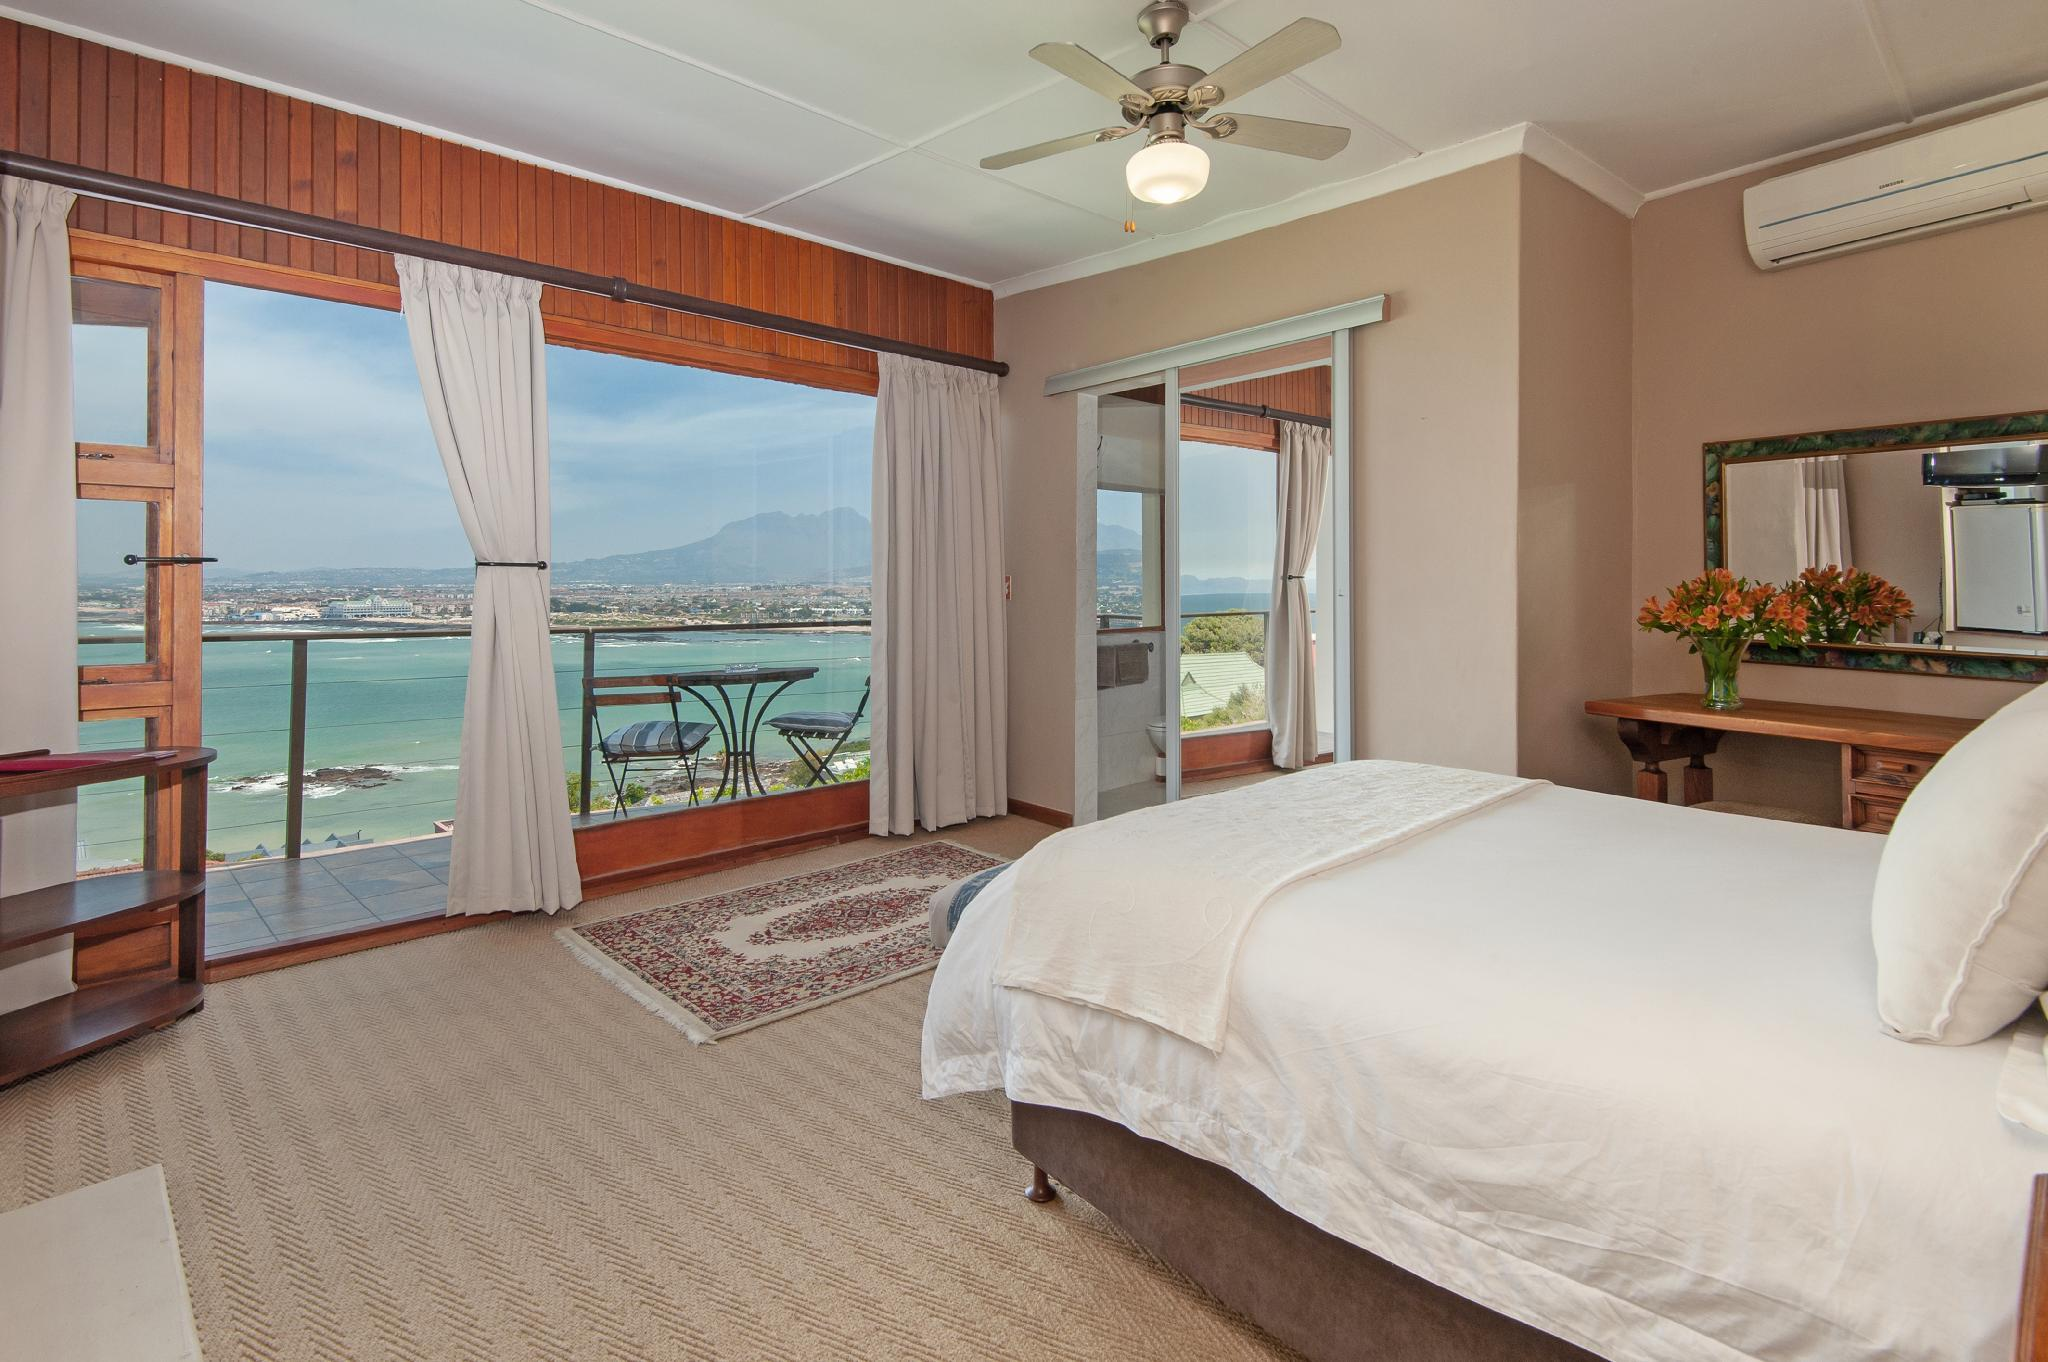 Deluxe Double Room with Balcony and Shower